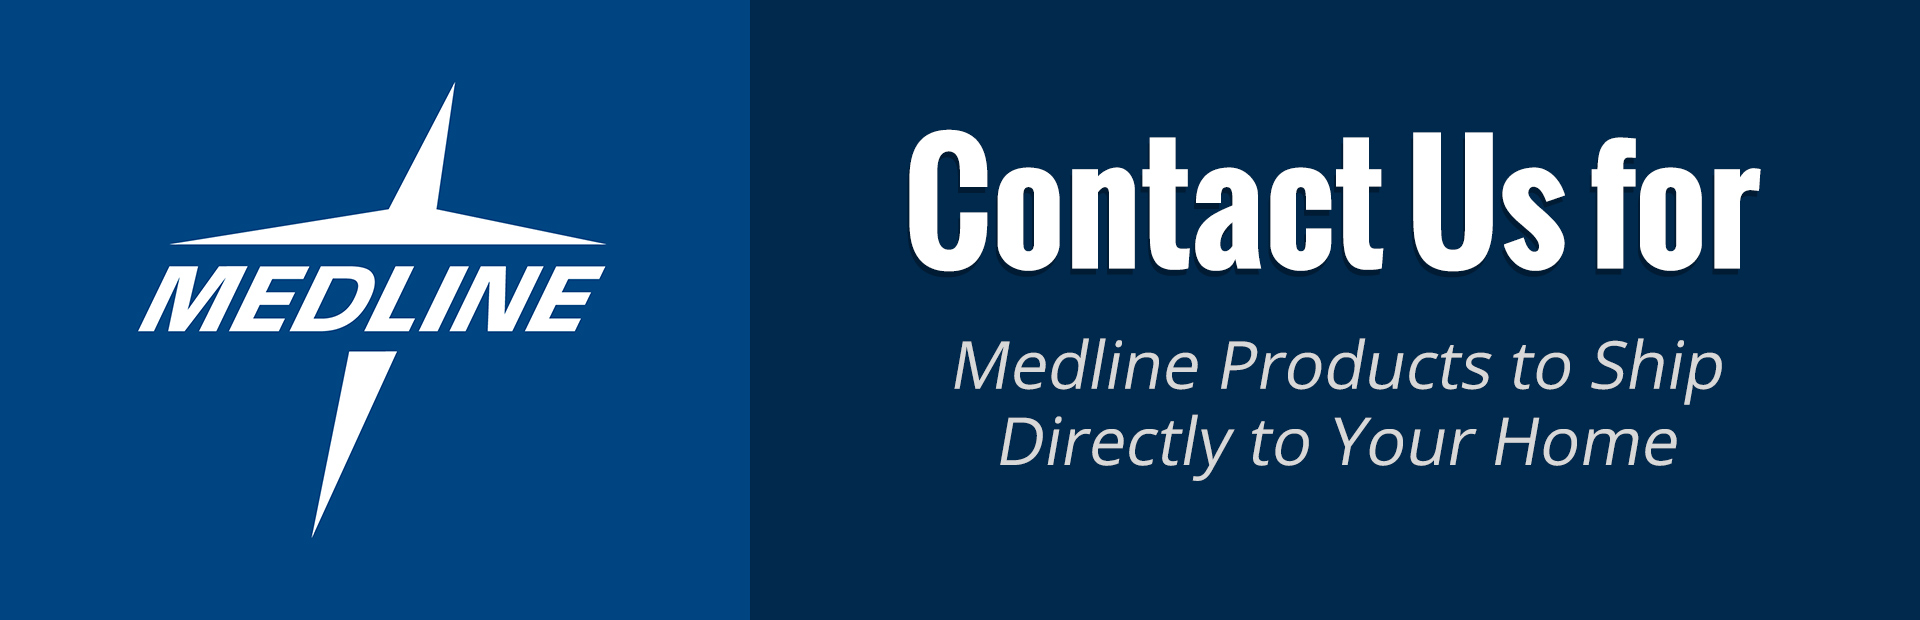 Contact us for Medline products to ship directly to your home.